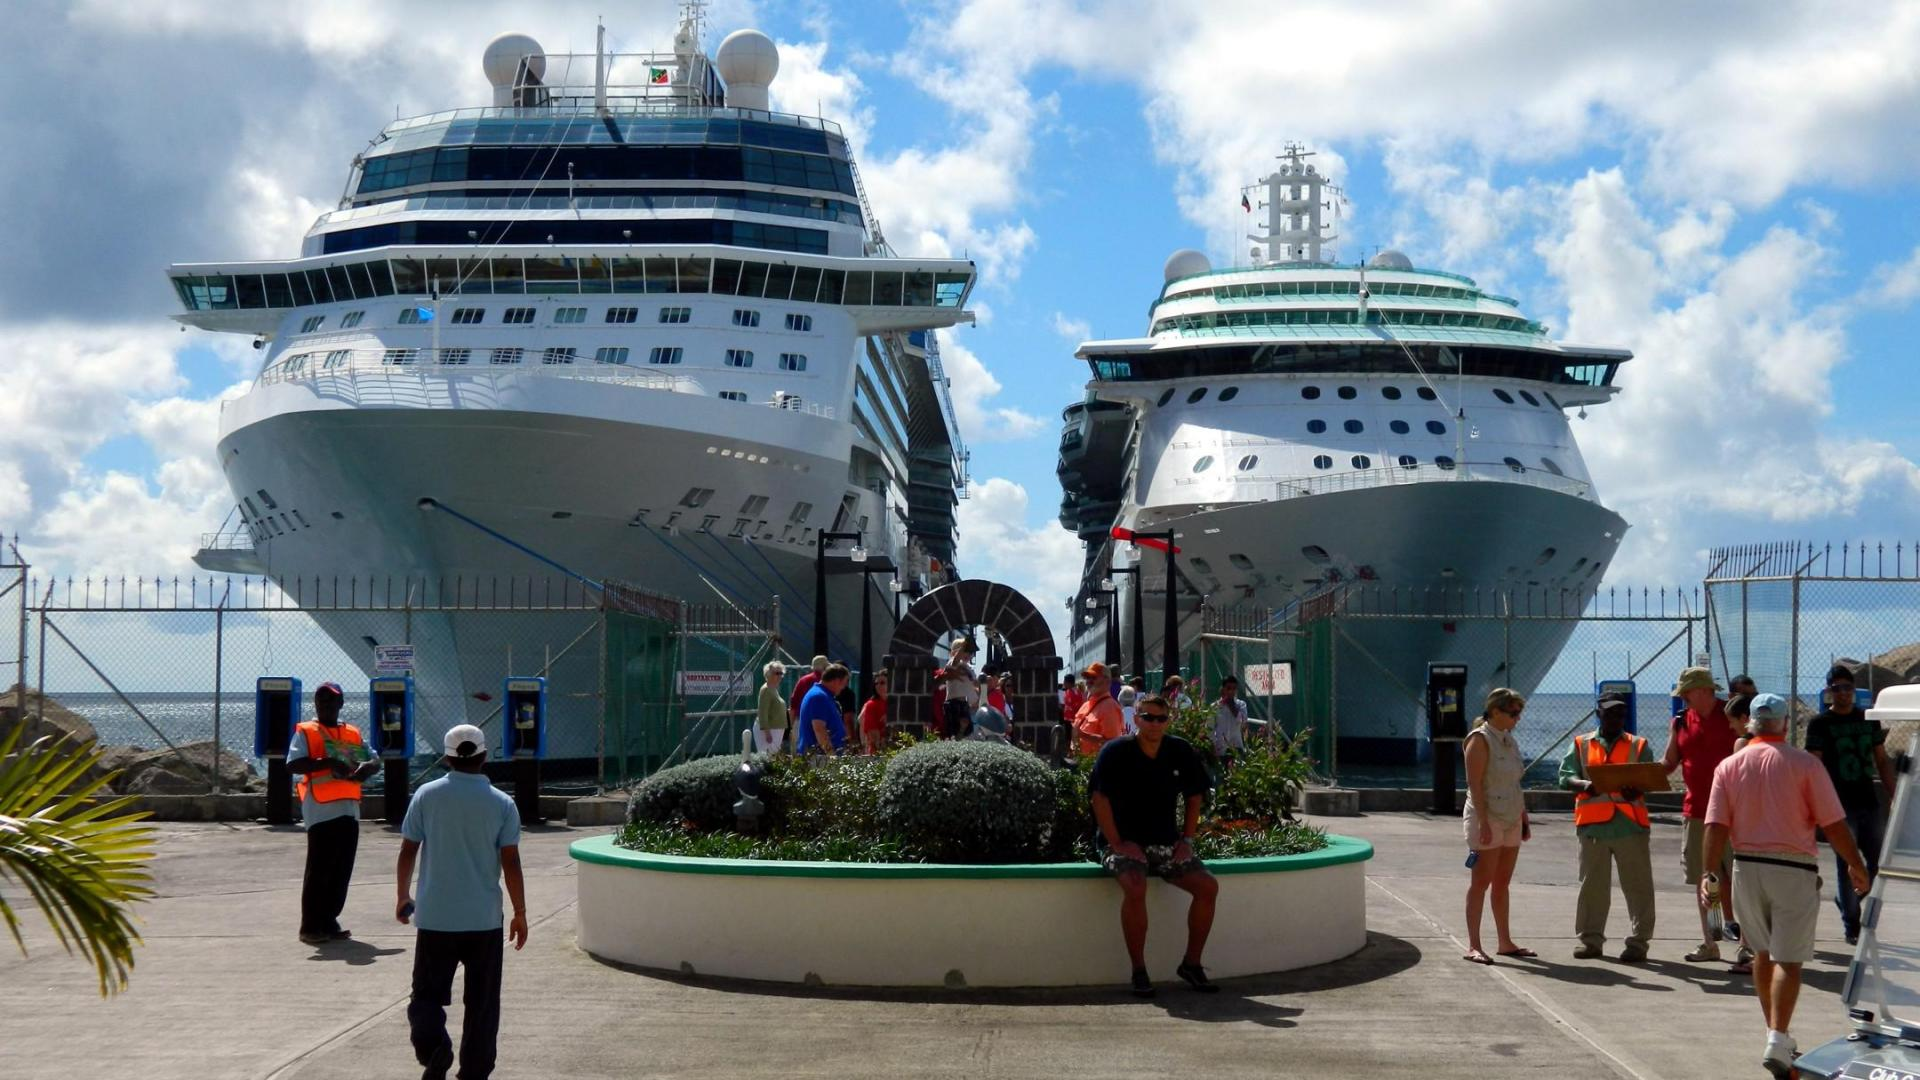 Cruise ships at basseterre st kitts nevis   133938   High Quality 1920x1080